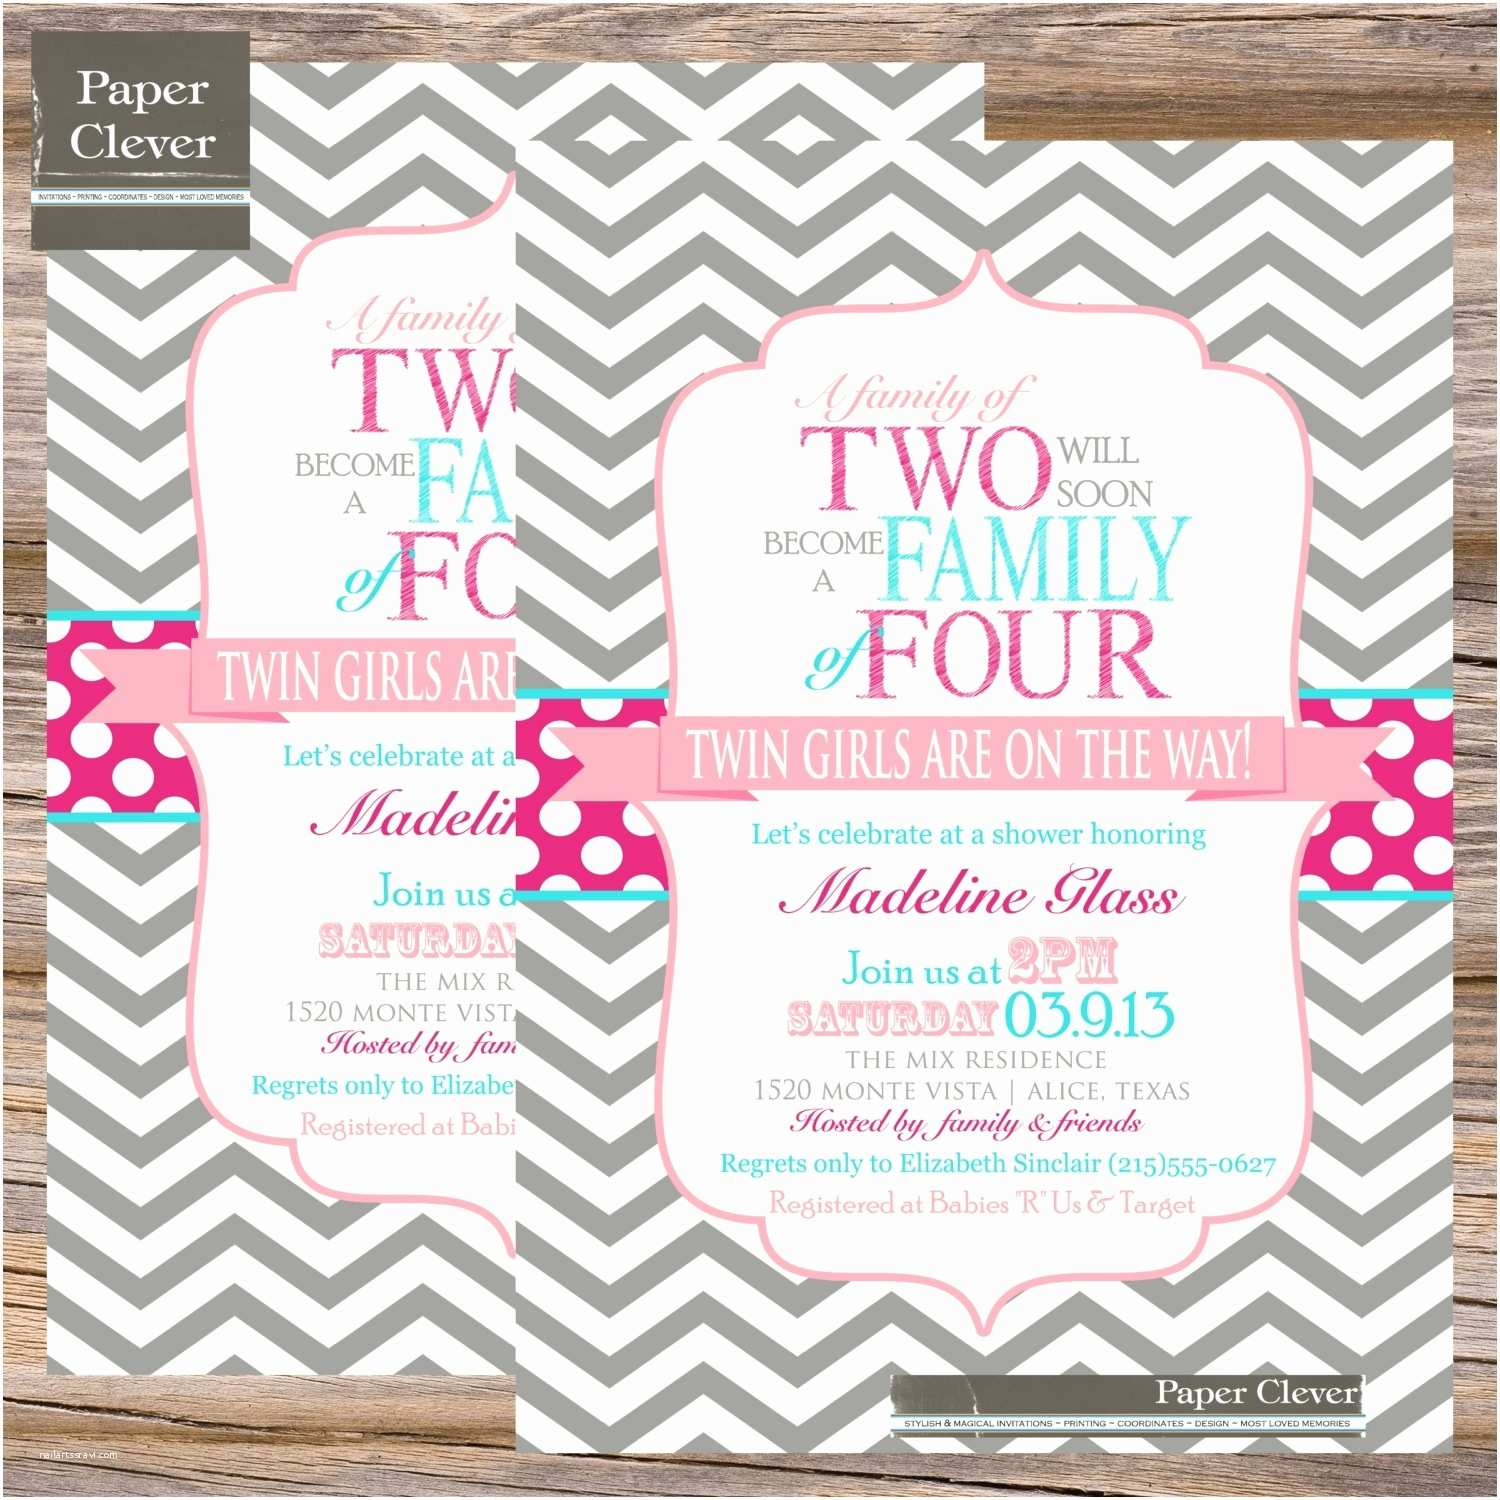 Couples Baby Shower Invitation Wording Couples Baby Shower Invitation Wording Template Resume